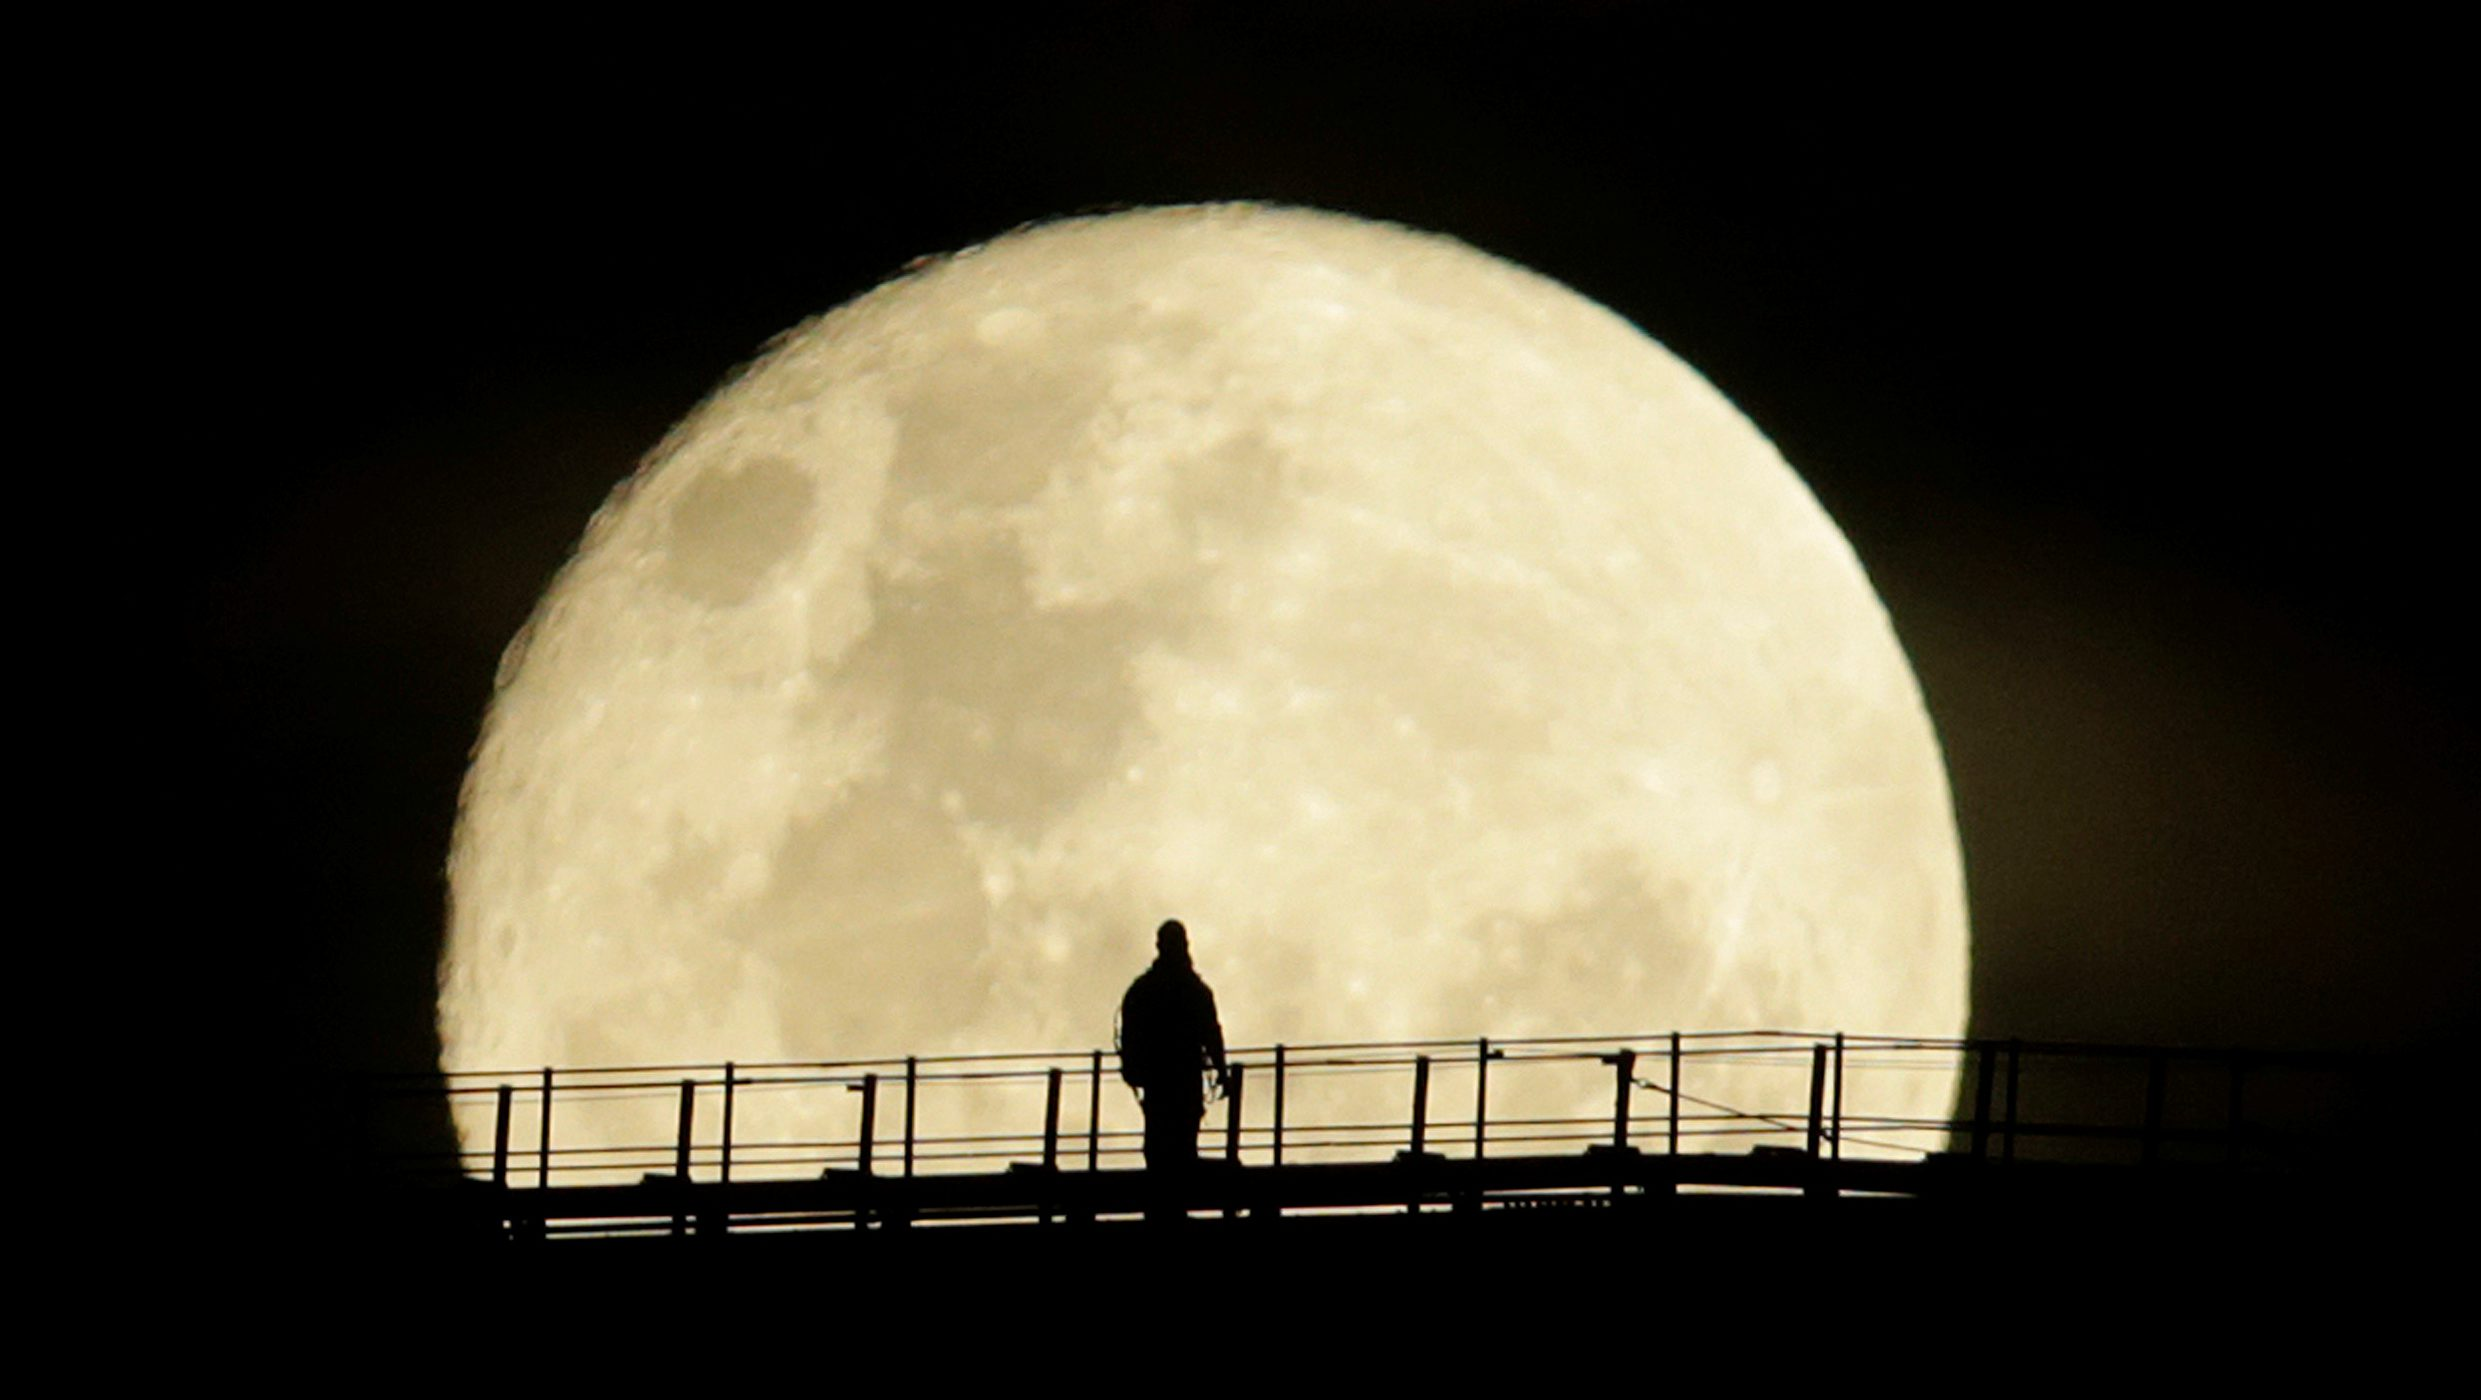 A man walks on the top span of the Sydney Harbour Bridge as the supermoon enters its final phase in Sydney, Australia, November 15, 2016.